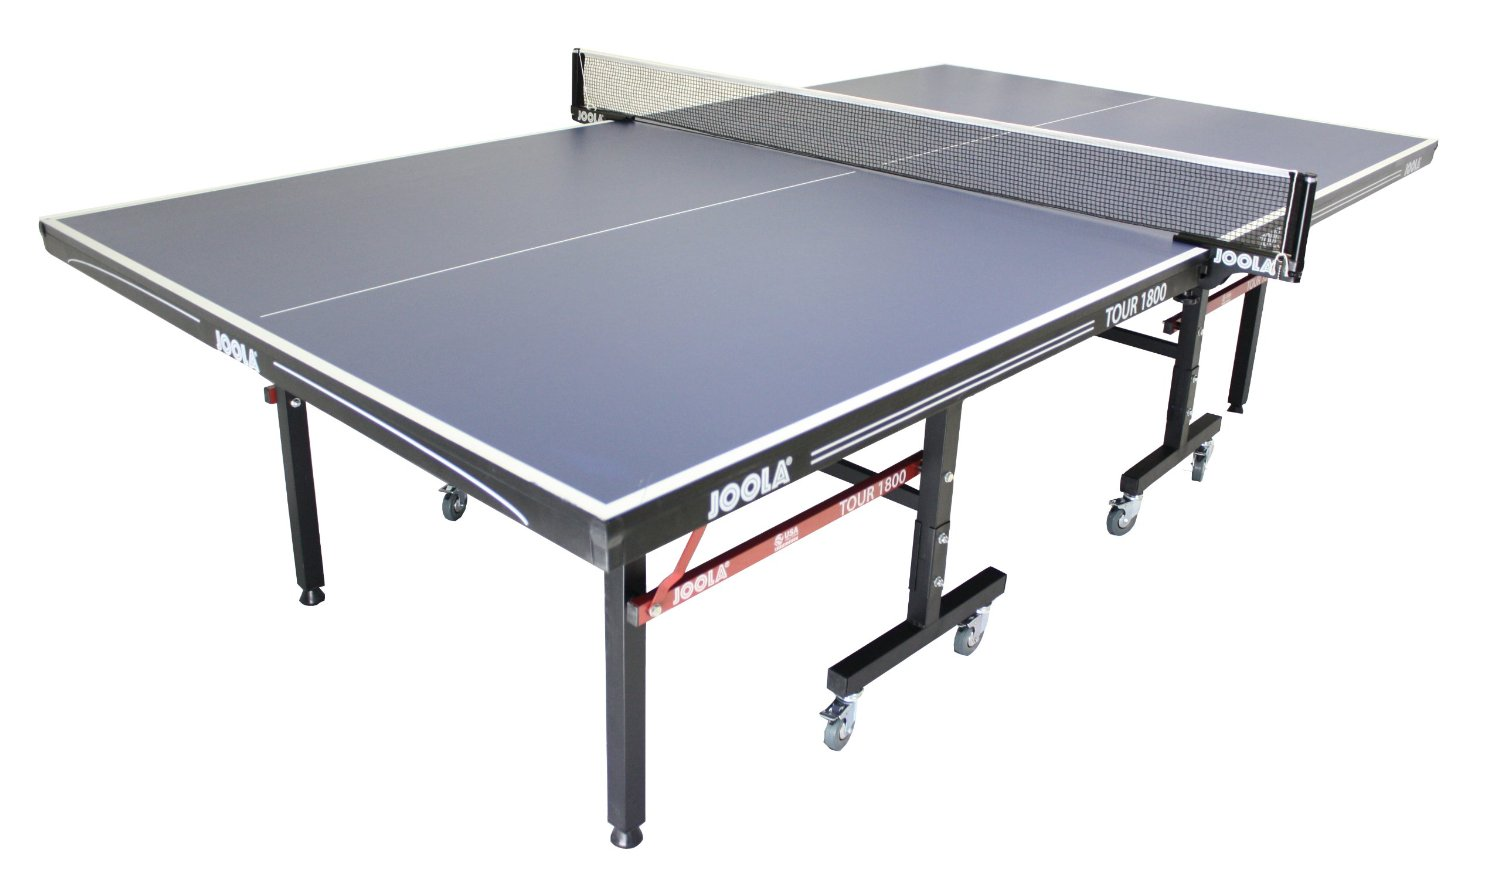 Joola Tour 1800  Best Outdoor Ping Pong Tables. Tall Bathroom Cabinet With Drawers. Roll Top Desk Hardware. Reclaimed Wood Bar Height Table. Ralph Lauren Table Lamps. Slim Drawers. Henredon Dining Table. Antique Dining Table. Black Leather Desk Accessories